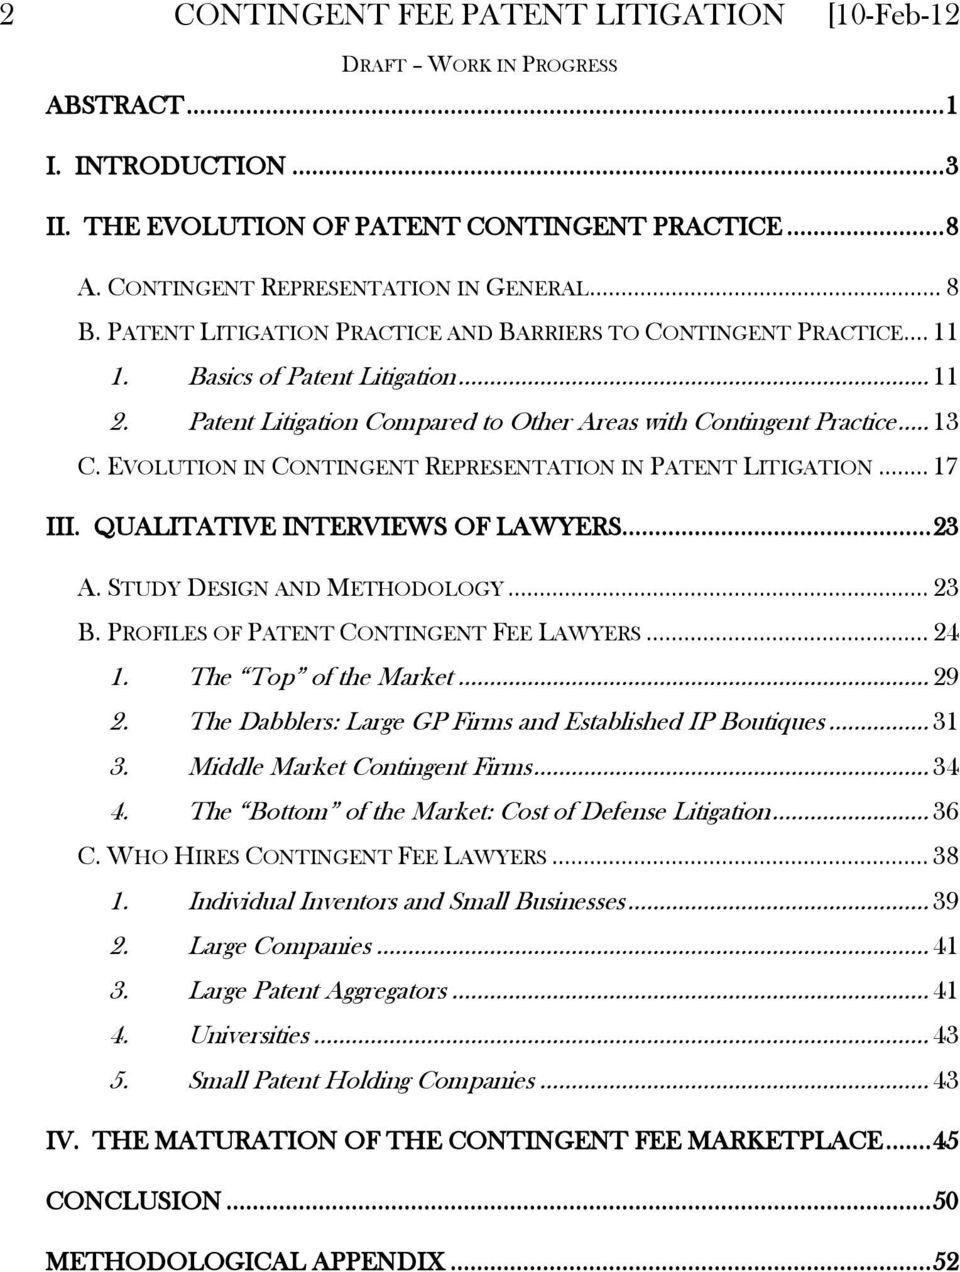 EVOLUTION IN CONTINGENT REPRESENTATION IN PATENT LITIGATION... 17 III. QUALITATIVE INTERVIEWS OF LAWYERS... 23 A. STUDY DESIGN AND METHODOLOGY... 23 B. PROFILES OF PATENT CONTINGENT FEE LAWYERS... 24 1.